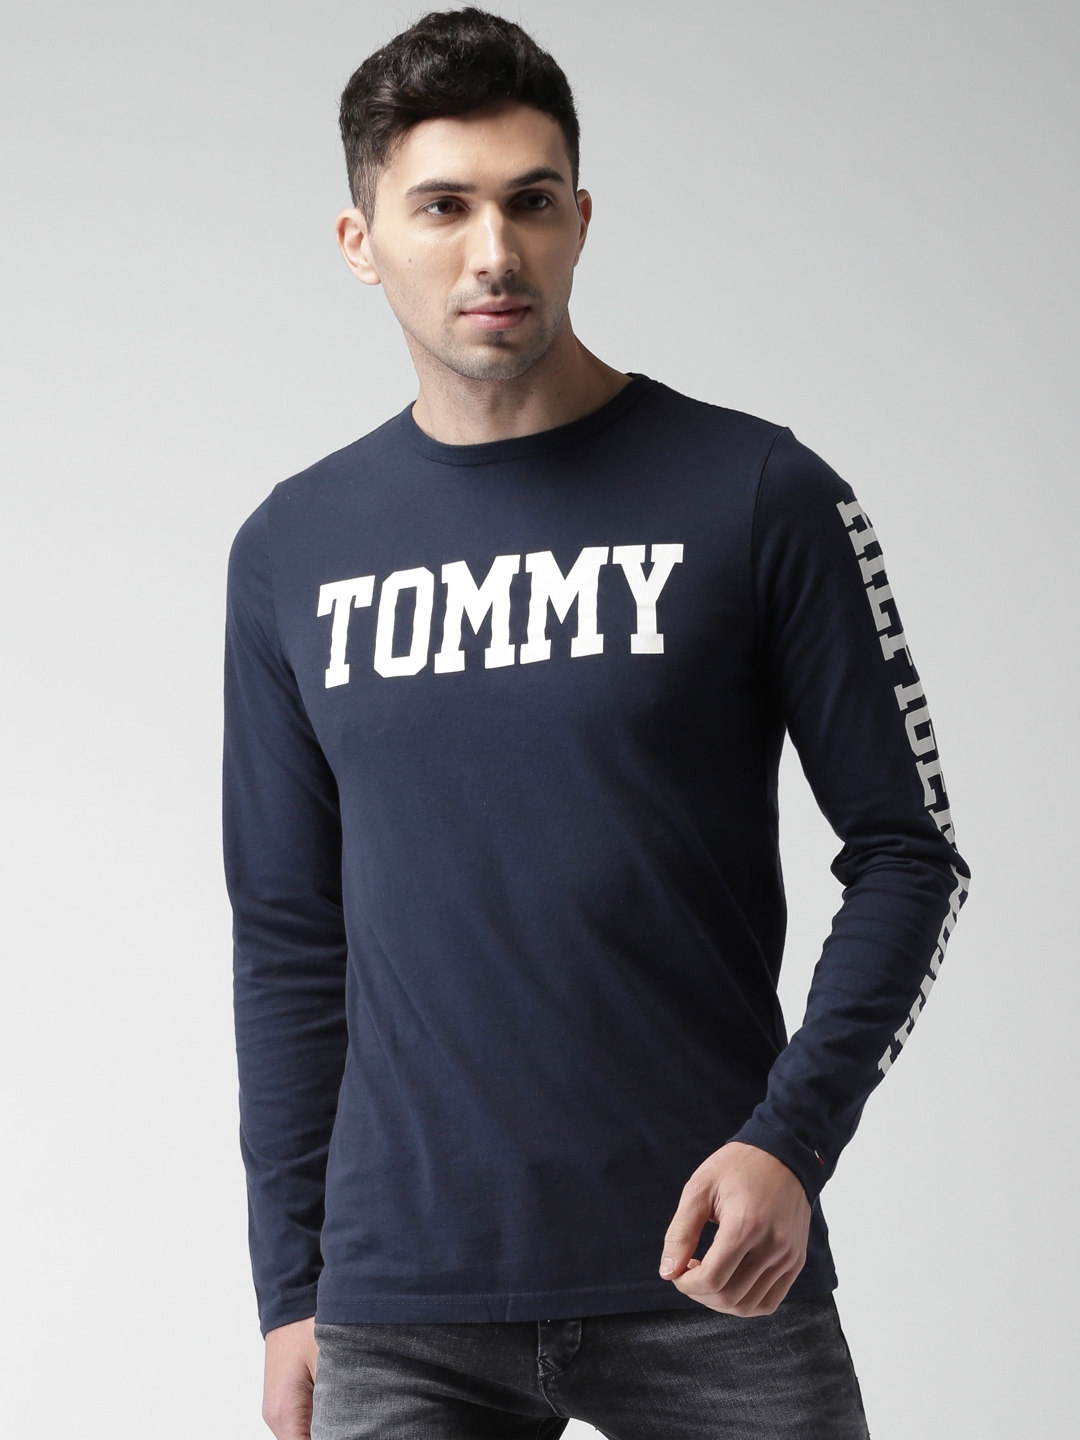 34cc2fba Buy Tommy Hilfiger Men Navy Blue Printed Round Neck T Shirt ...